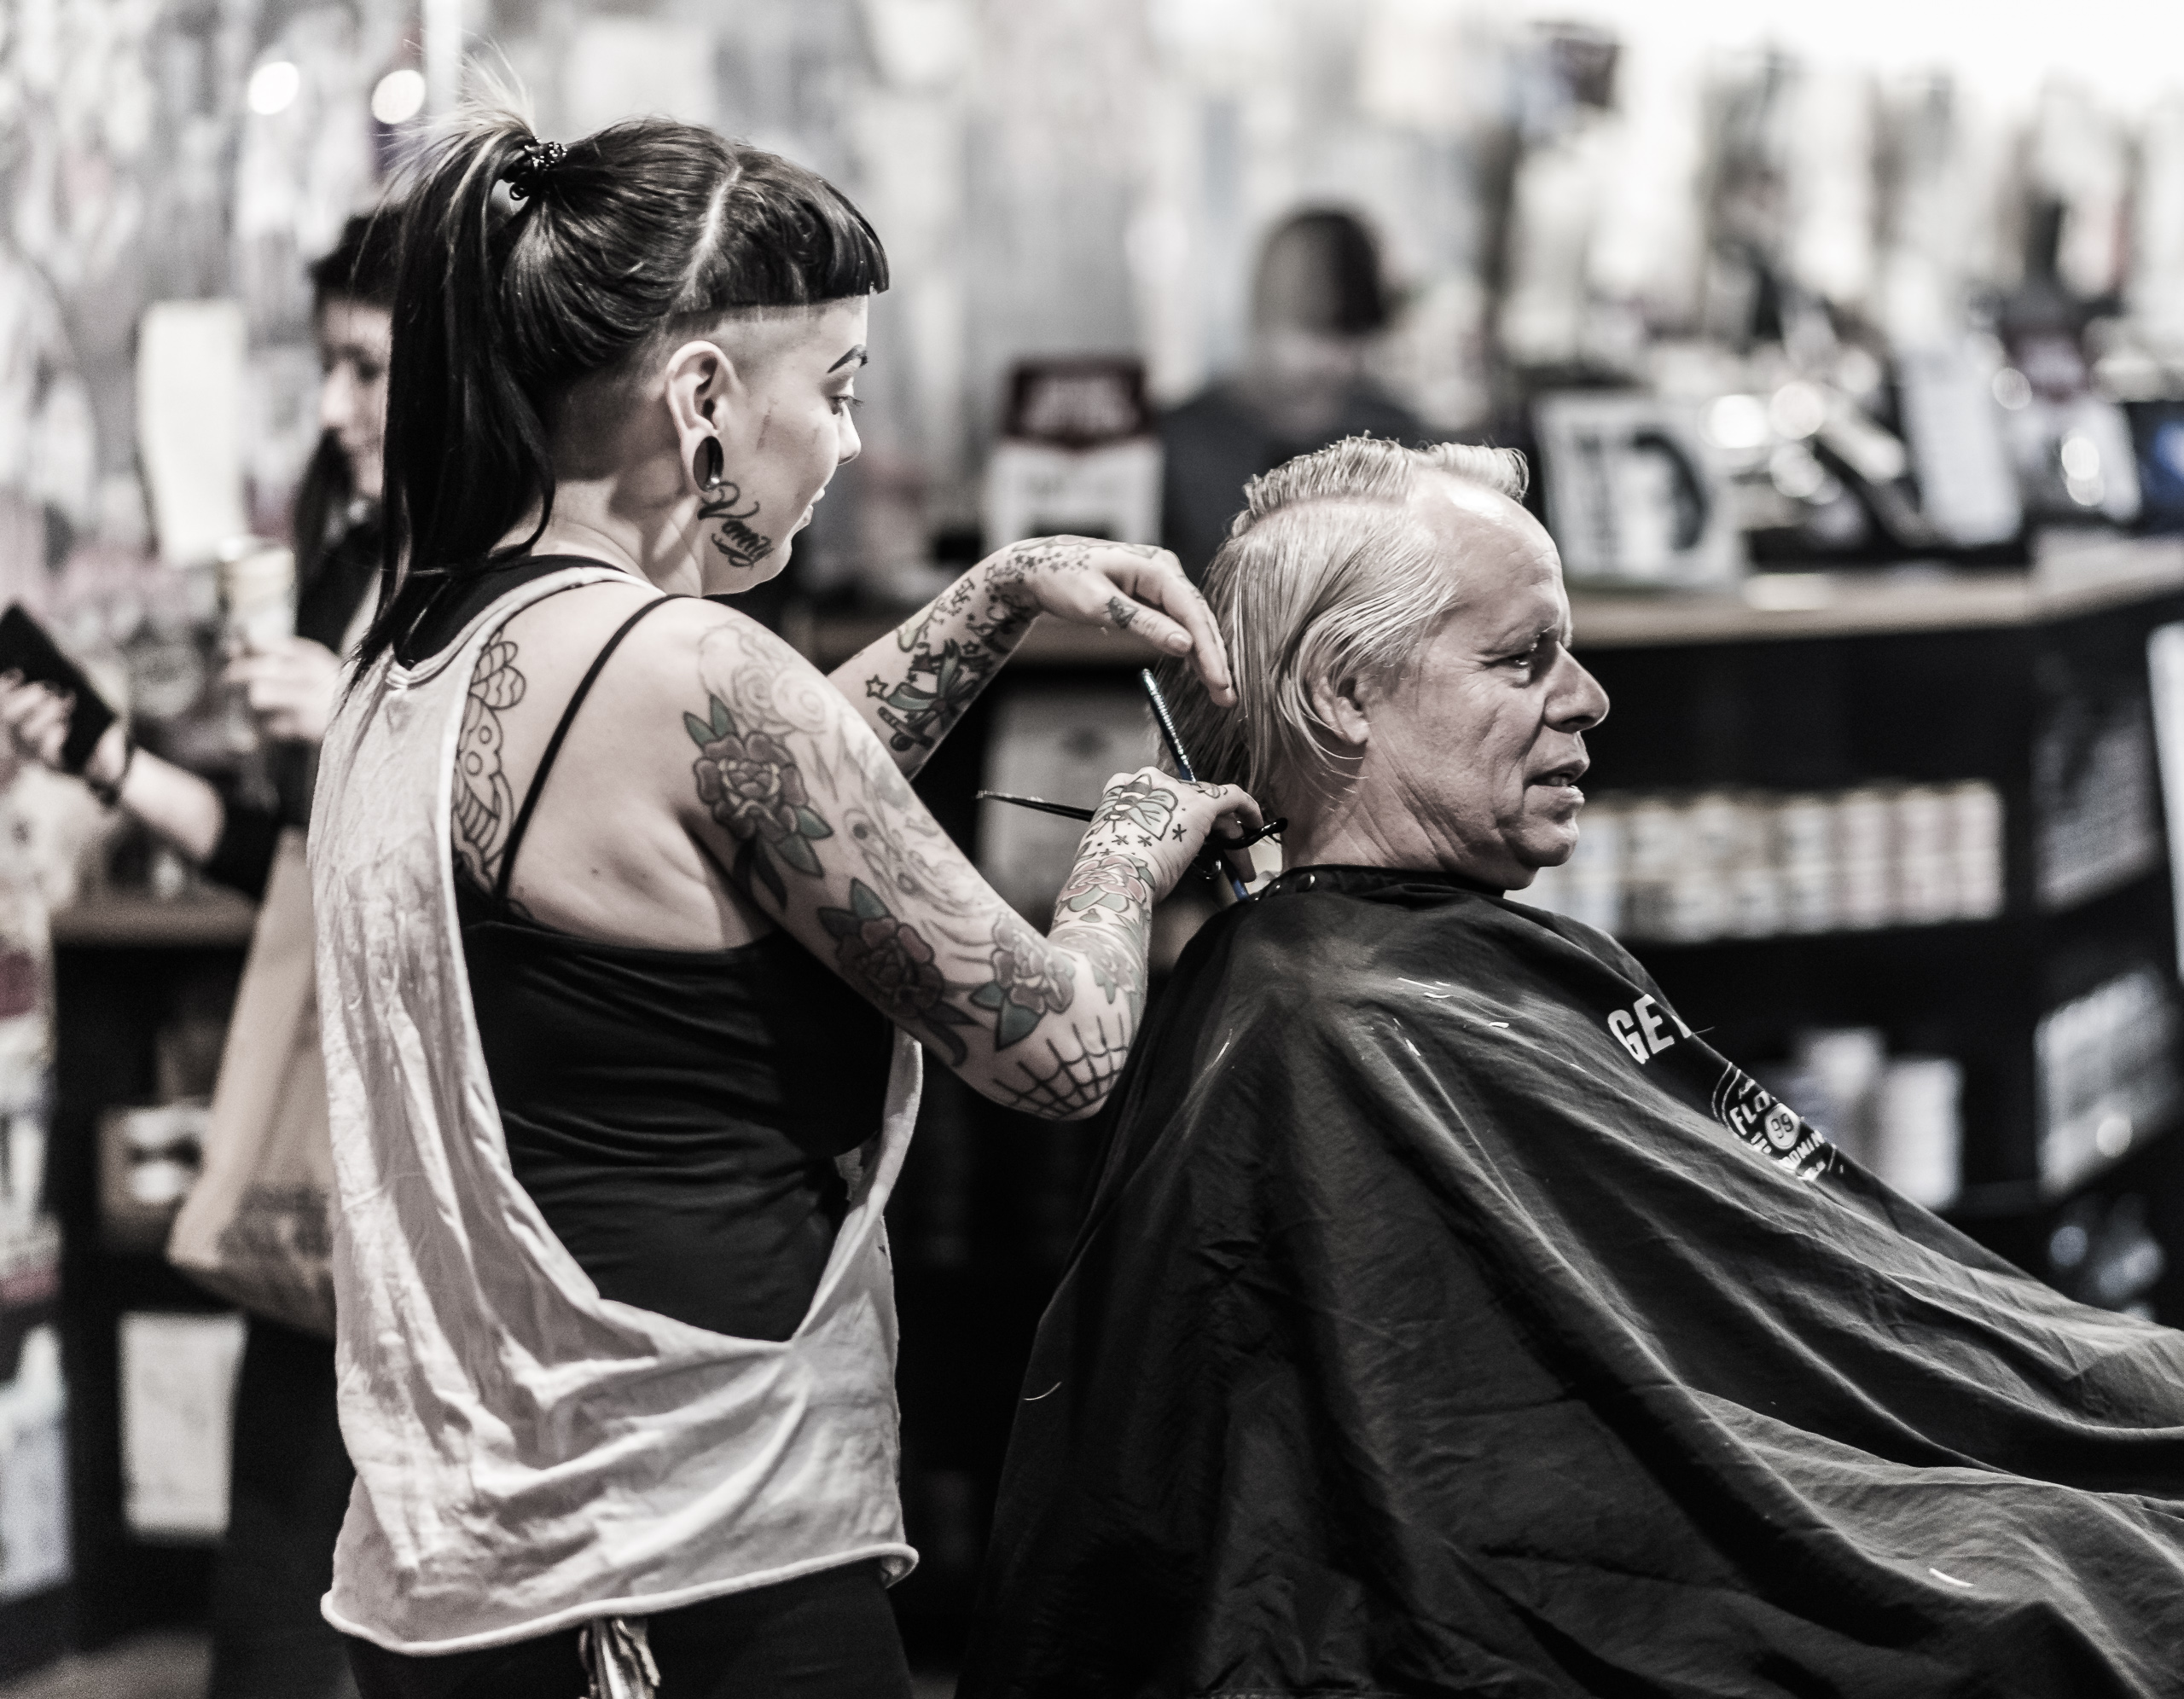 a man sits in a barber's chair as a woman cuts his hair. Cahuenga Blvd. Hollywood, Los Angeles, Califorina.